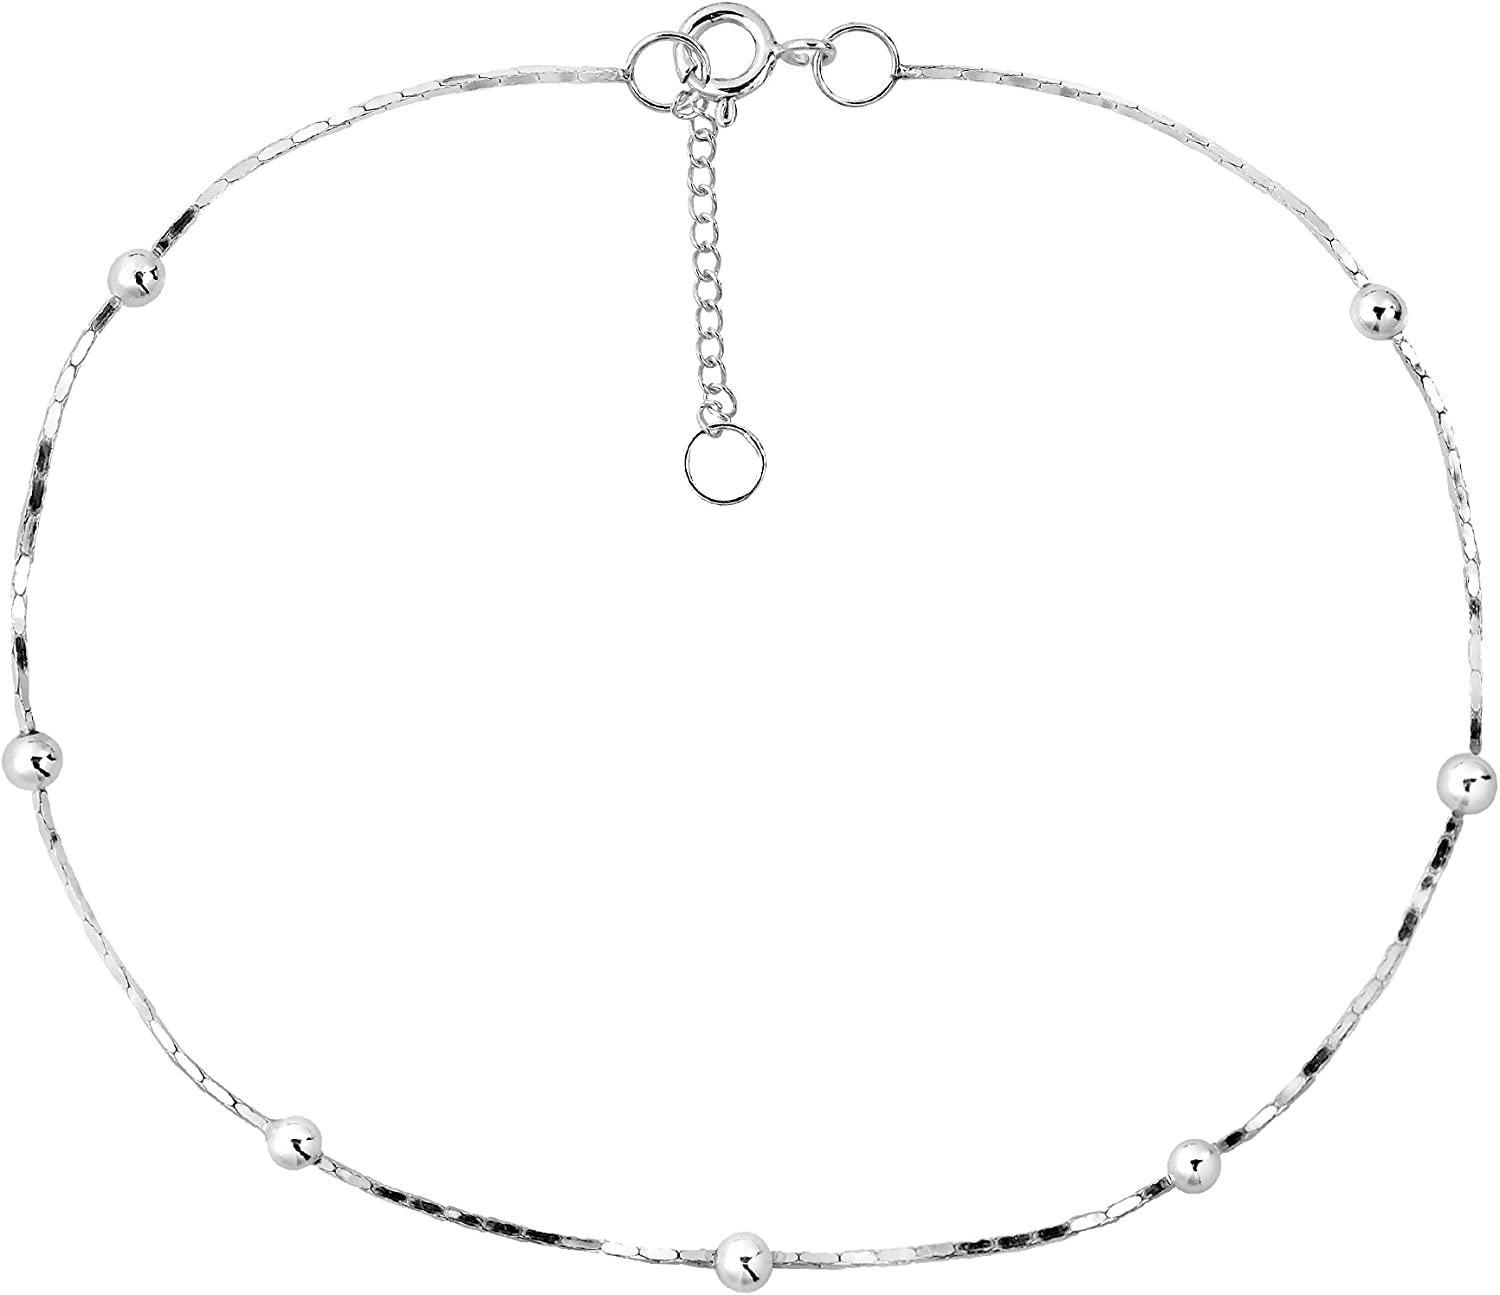 AeraVida Sleek Round Beads Simple .925 Sterling Silver Chain Anklet